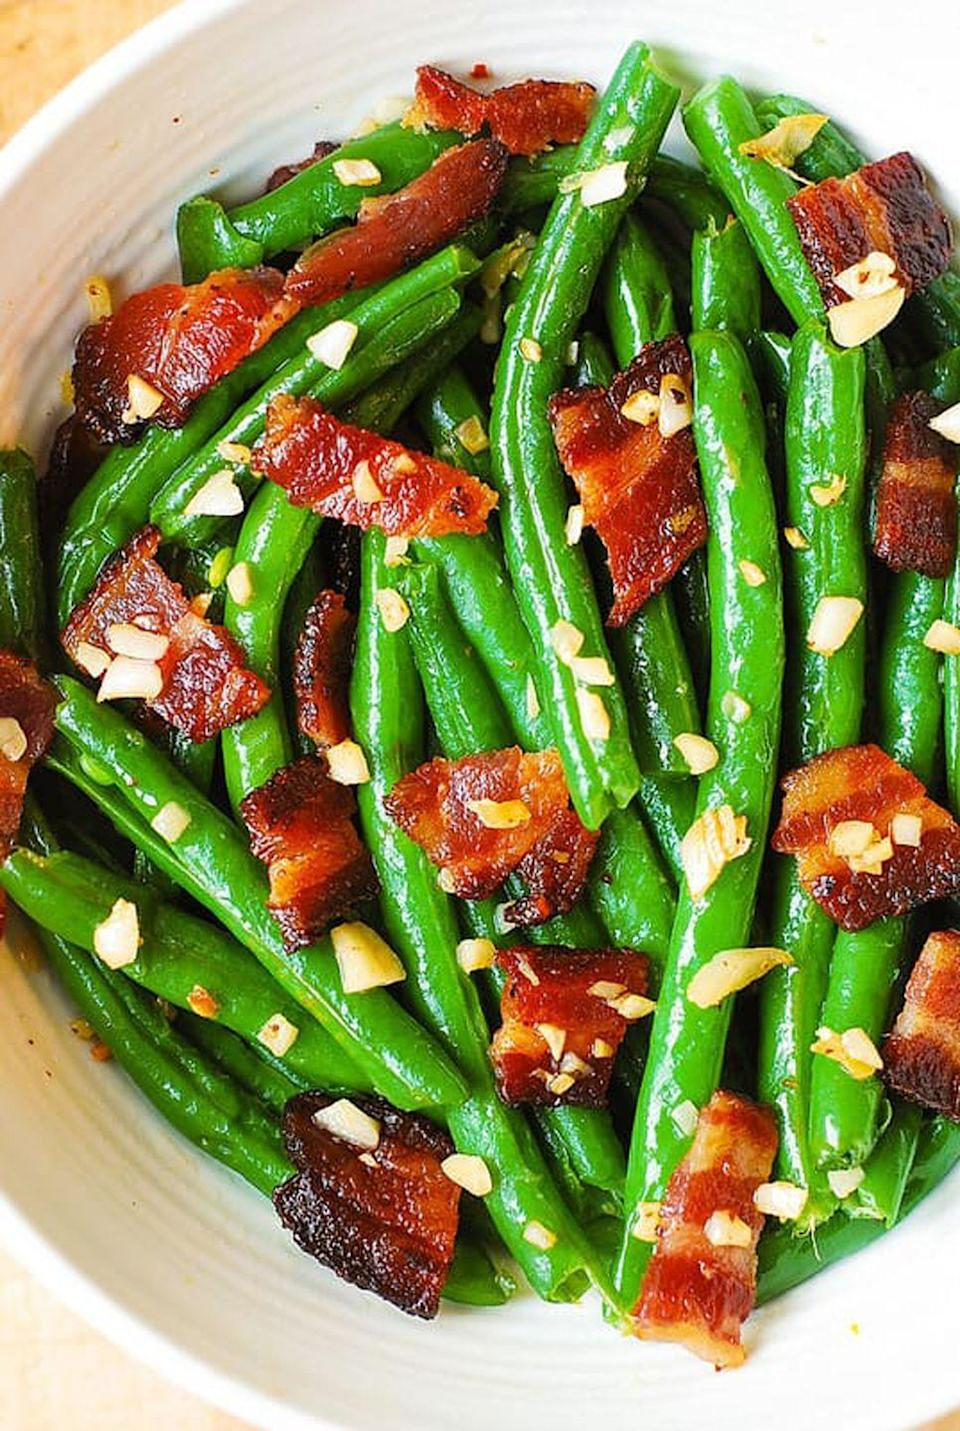 "<p>Save coveted oven space with this 30-minute <a href=""https://www.countryliving.com/food-drinks/g1547/green-bean-recipes/"" rel=""nofollow noopener"" target=""_blank"" data-ylk=""slk:veggie dish"" class=""link rapid-noclick-resp"">veggie dish</a> that's made on the stovetop. </p><p><strong>Get the recipe at <a href=""https://juliasalbum.com/garlic-and-bacon-green-beans/"" rel=""nofollow noopener"" target=""_blank"" data-ylk=""slk:Julia's Album"" class=""link rapid-noclick-resp"">Julia's Album</a>.</strong> </p>"